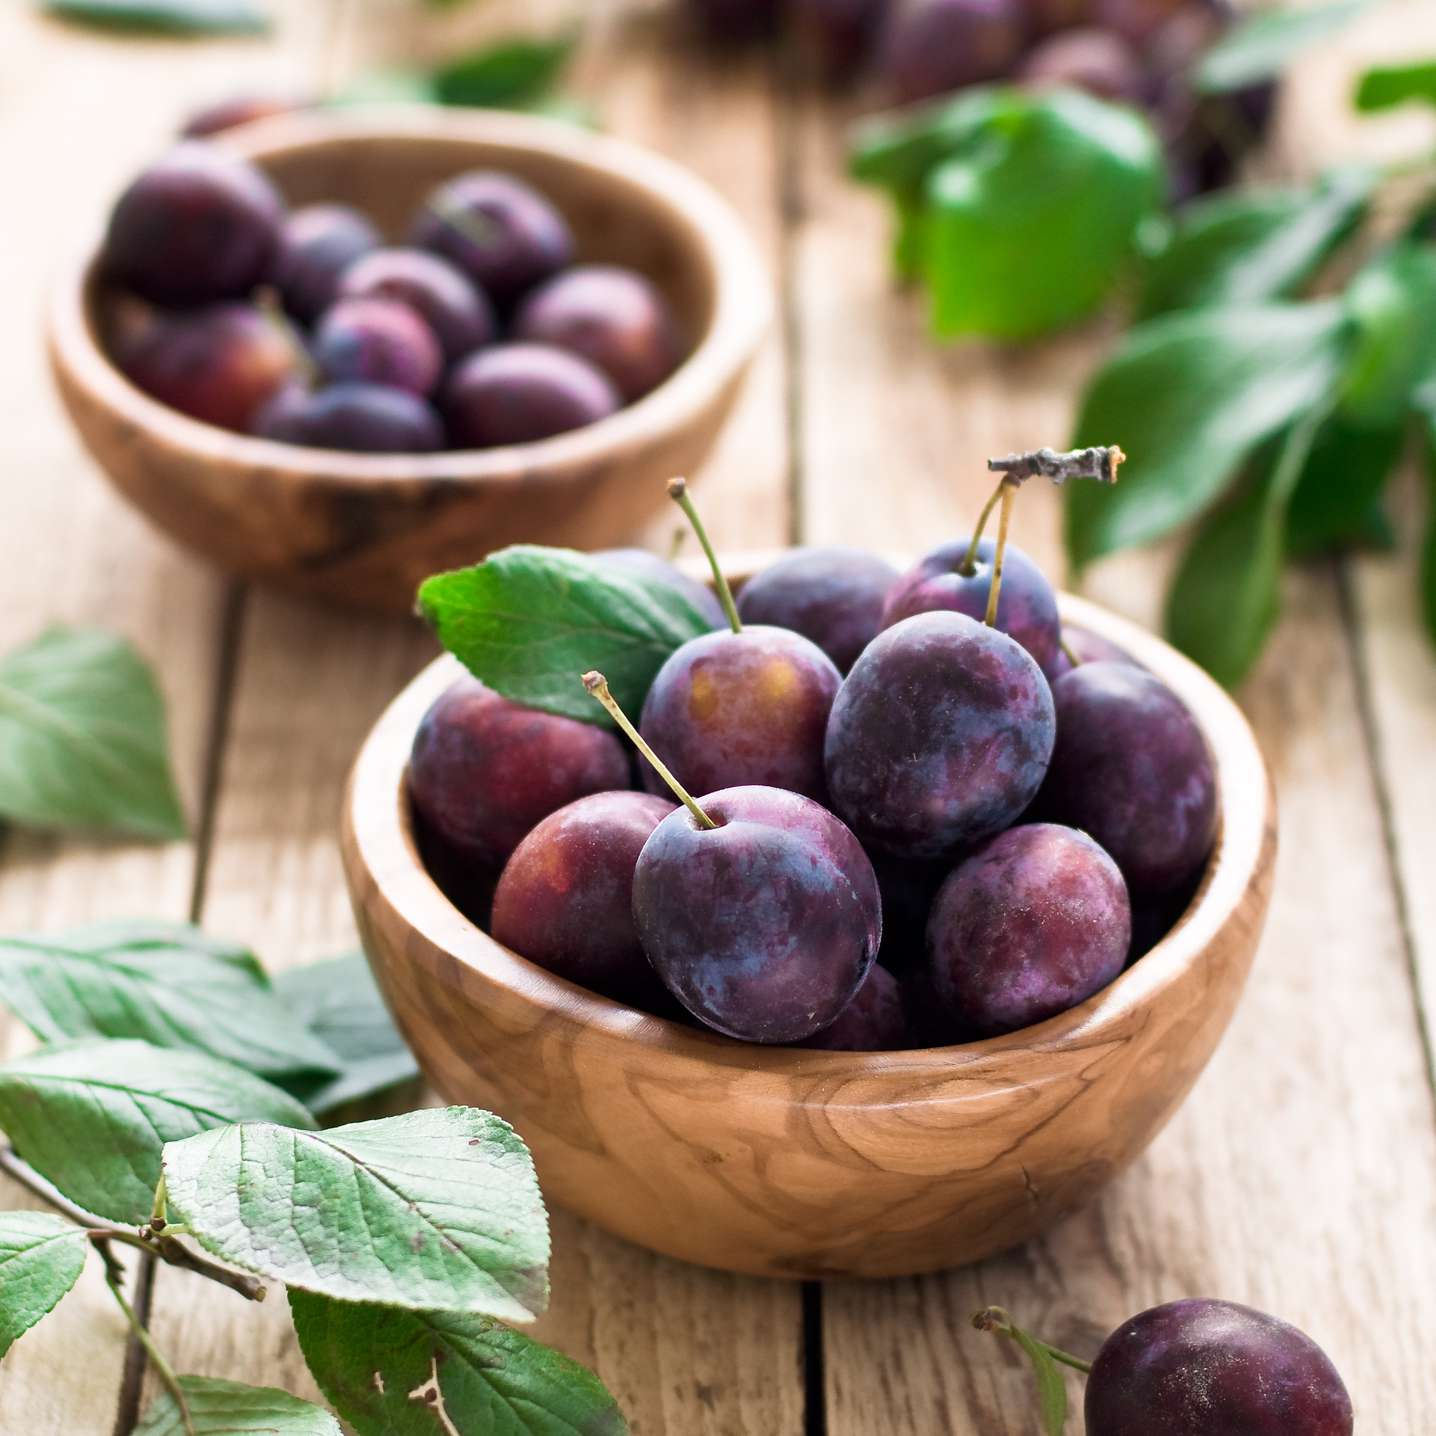 Bowls of fresh plums